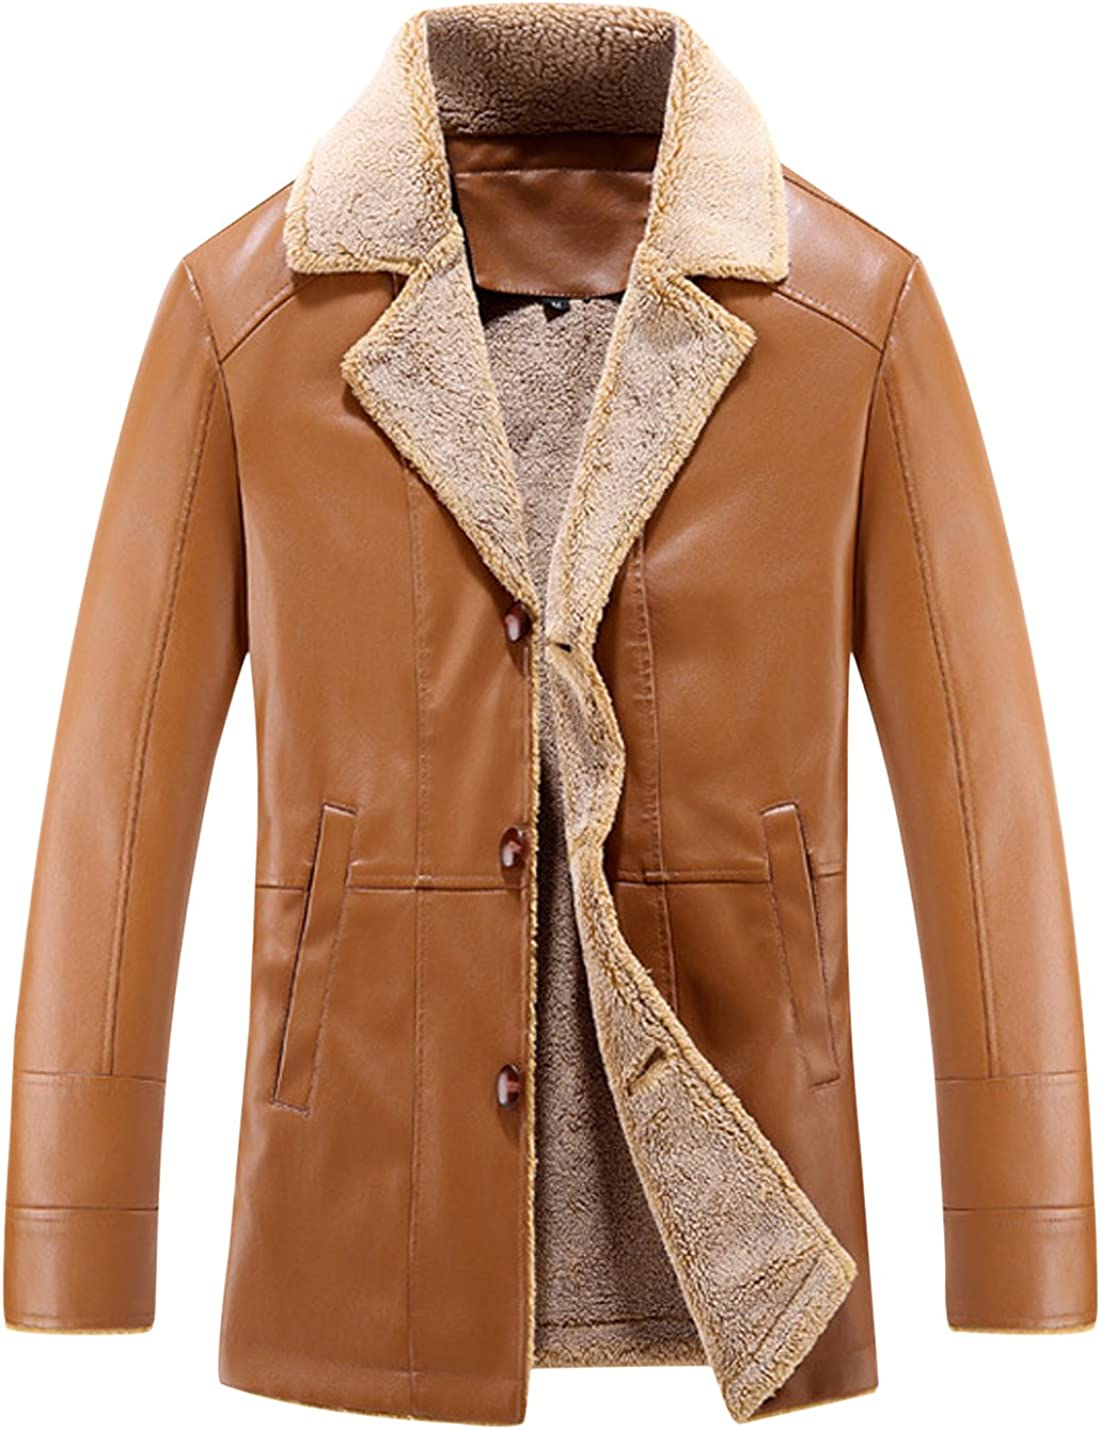 Sales for sale Tanming Men's Classic Sherpa Lined Outerwear Sale price Faux Jacket Leather